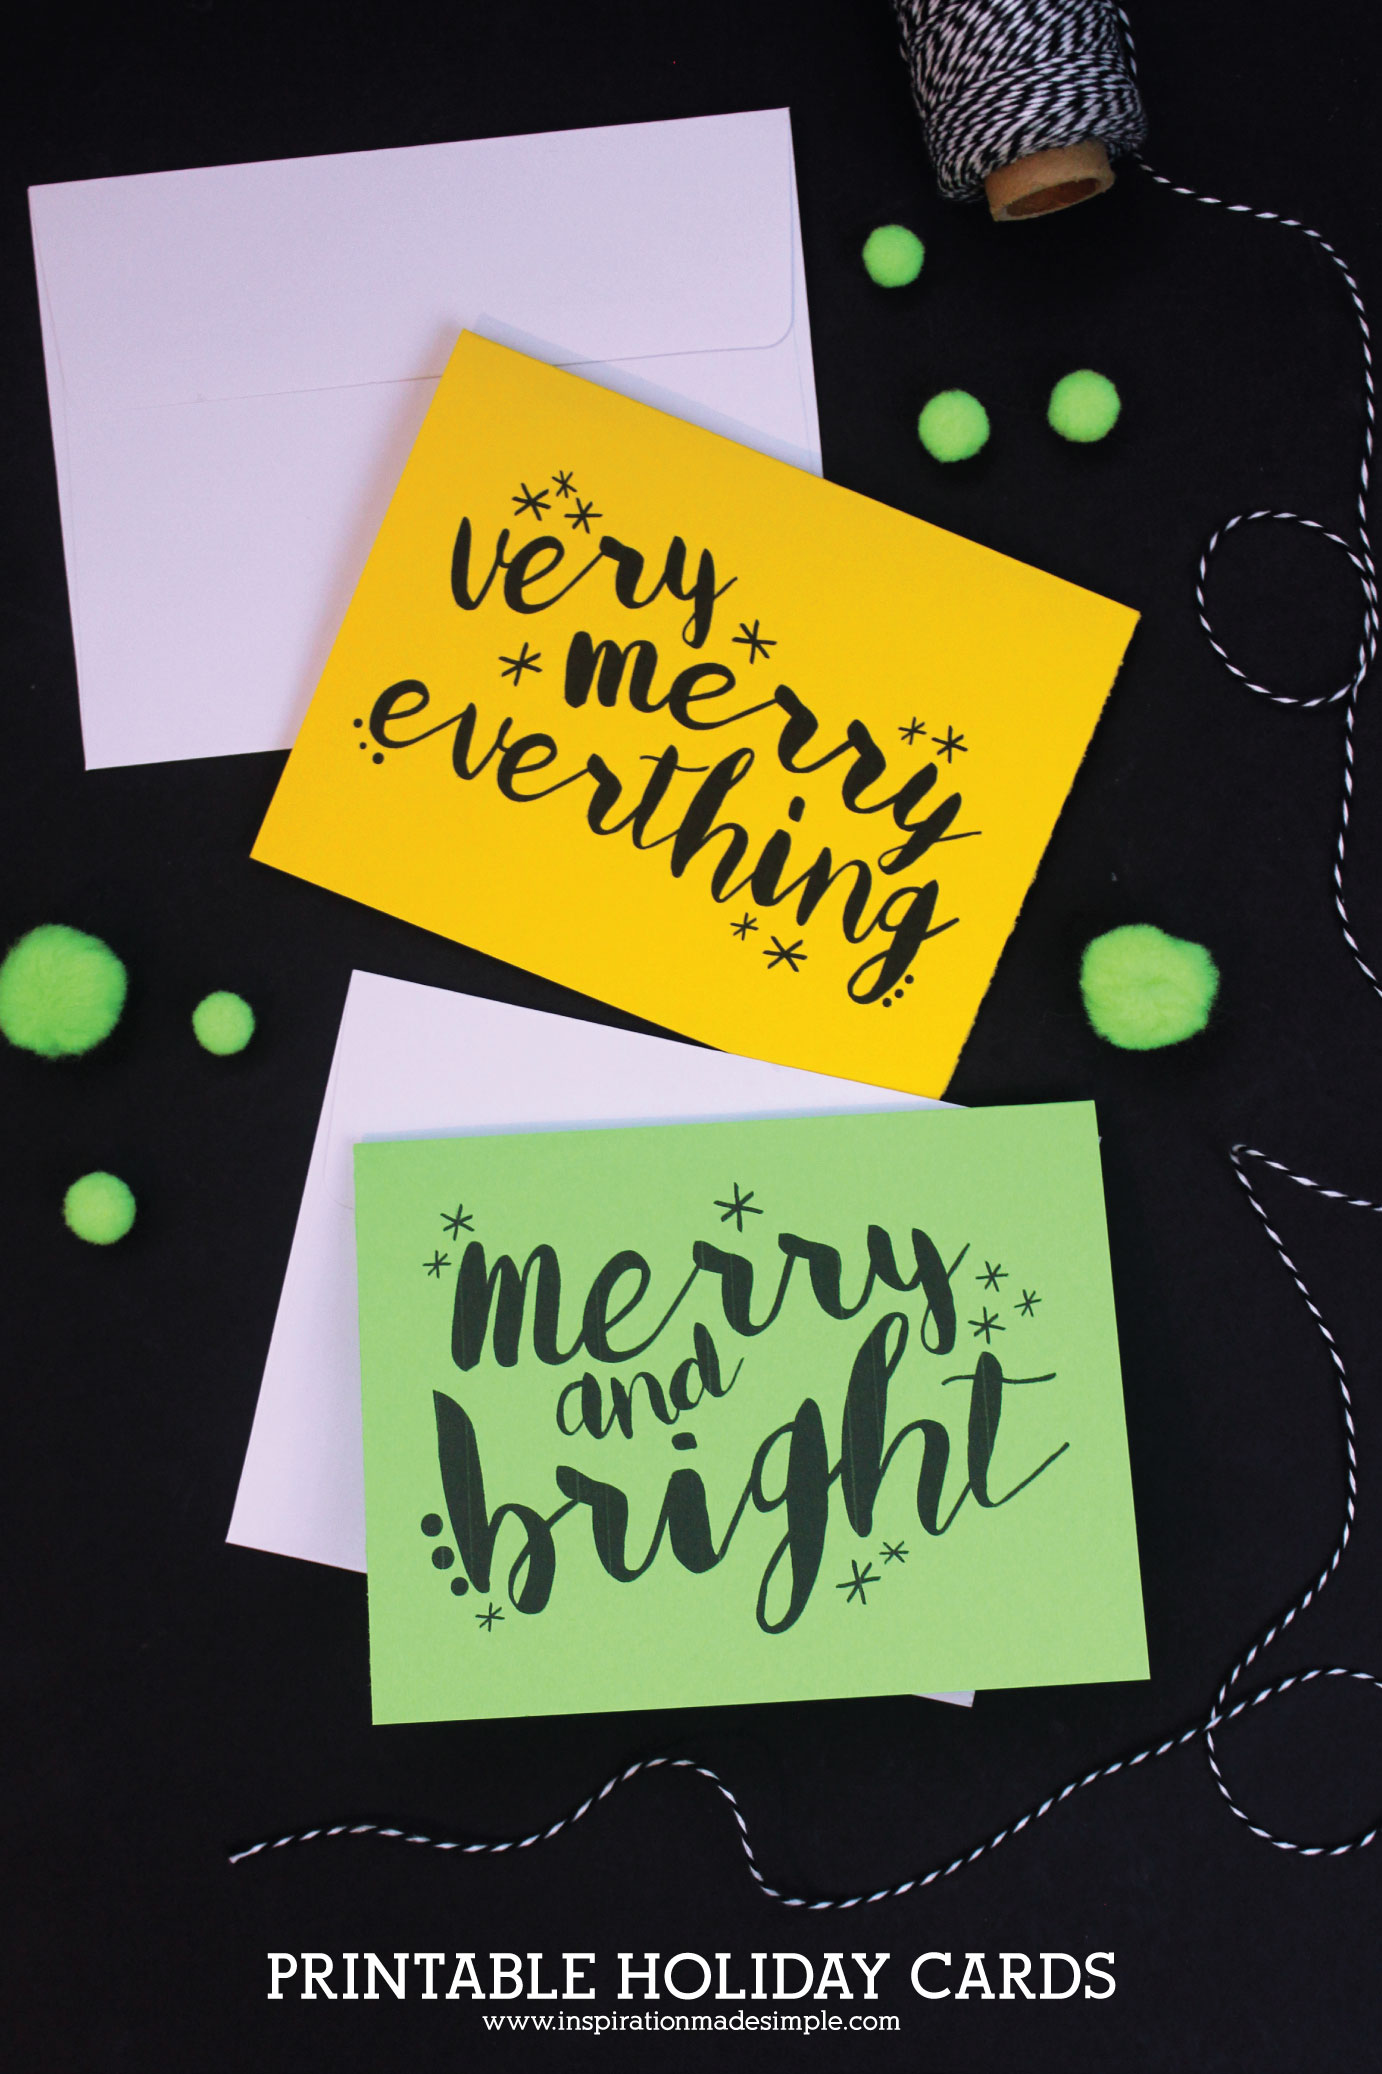 Gorgeous printable holiday cards plus SVG cut file